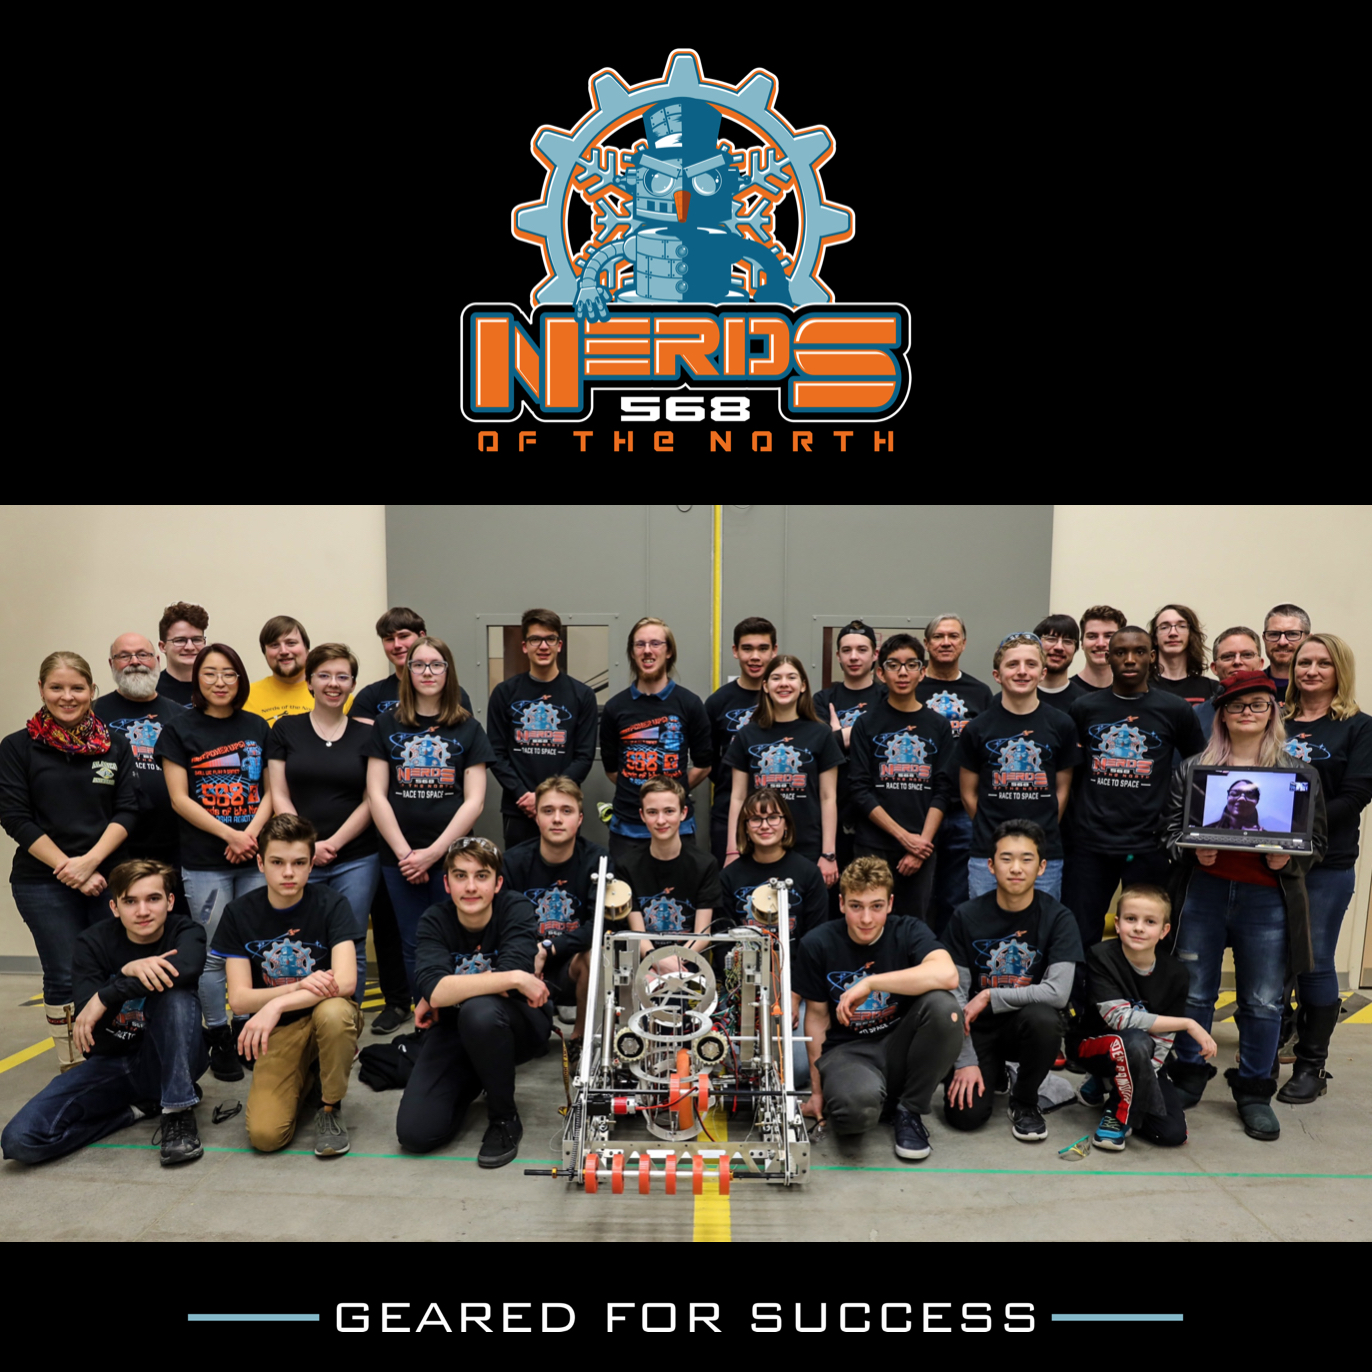 group photo of robotics team with robot